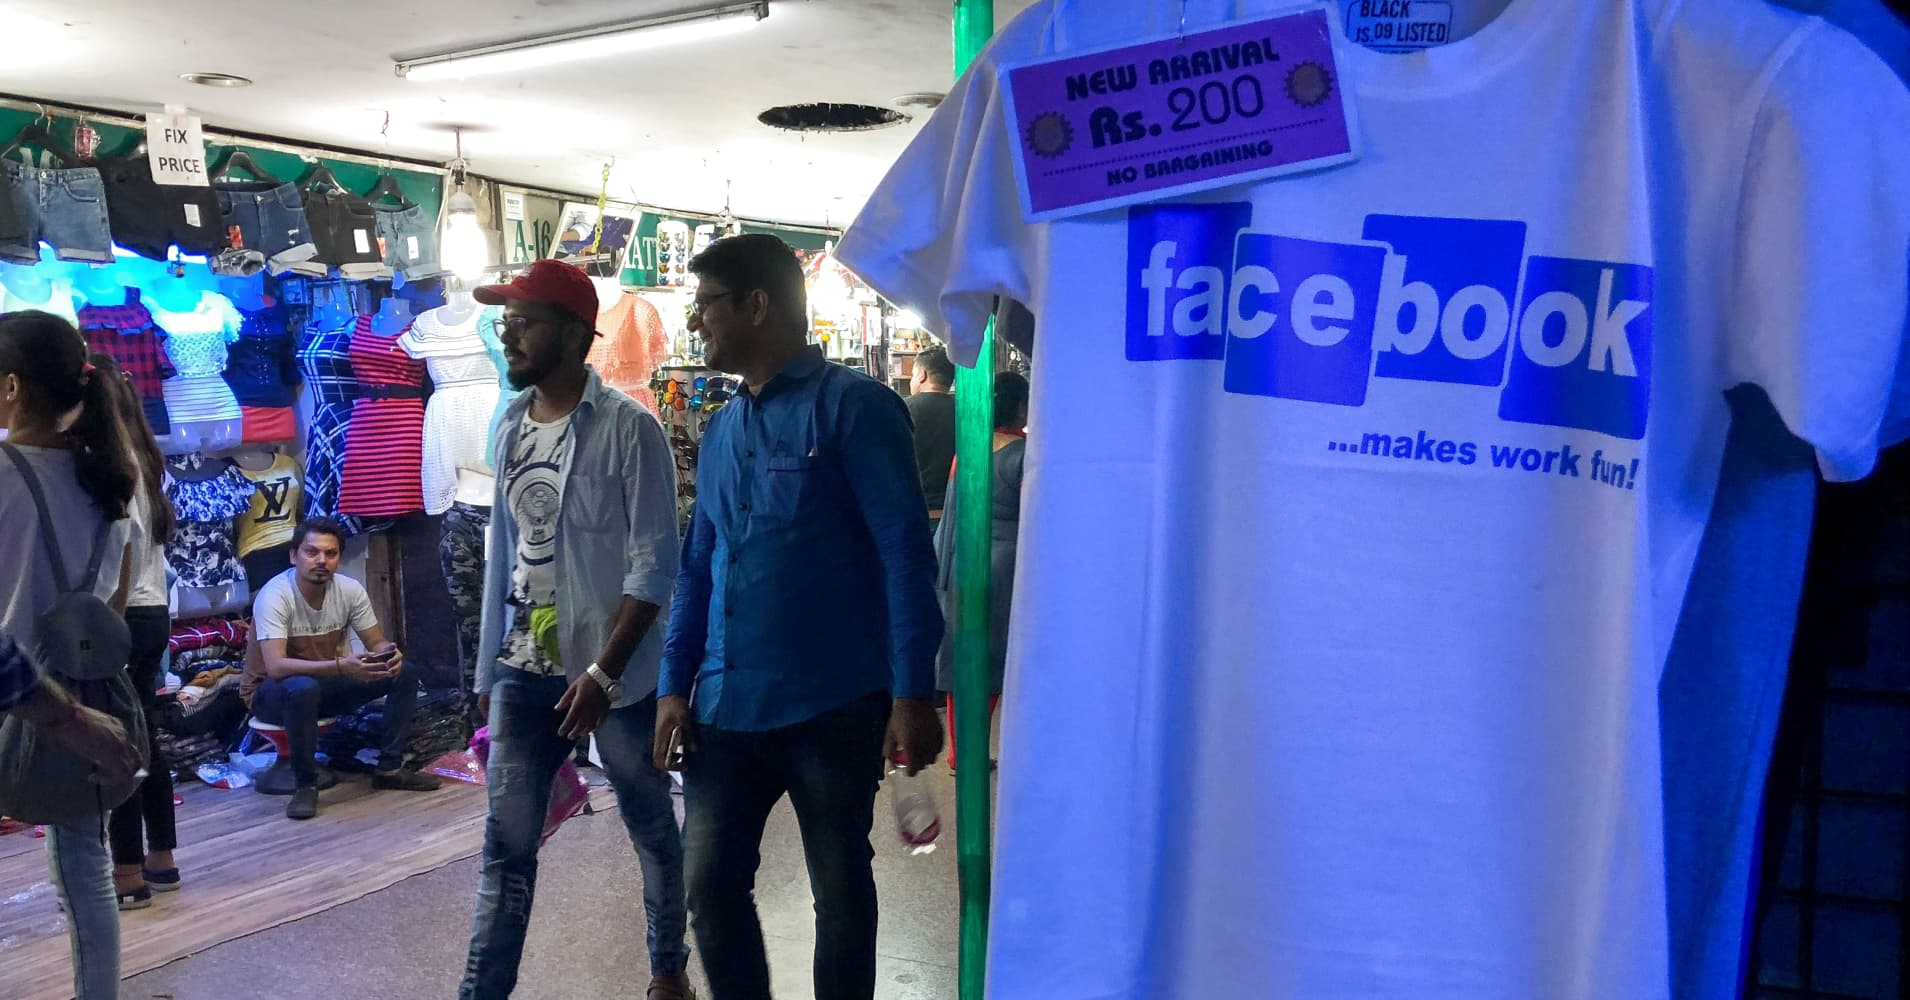 Imitation Facebook T-Shirts are displayed for sale inside a shop in New Delhi on March 28, 2018.